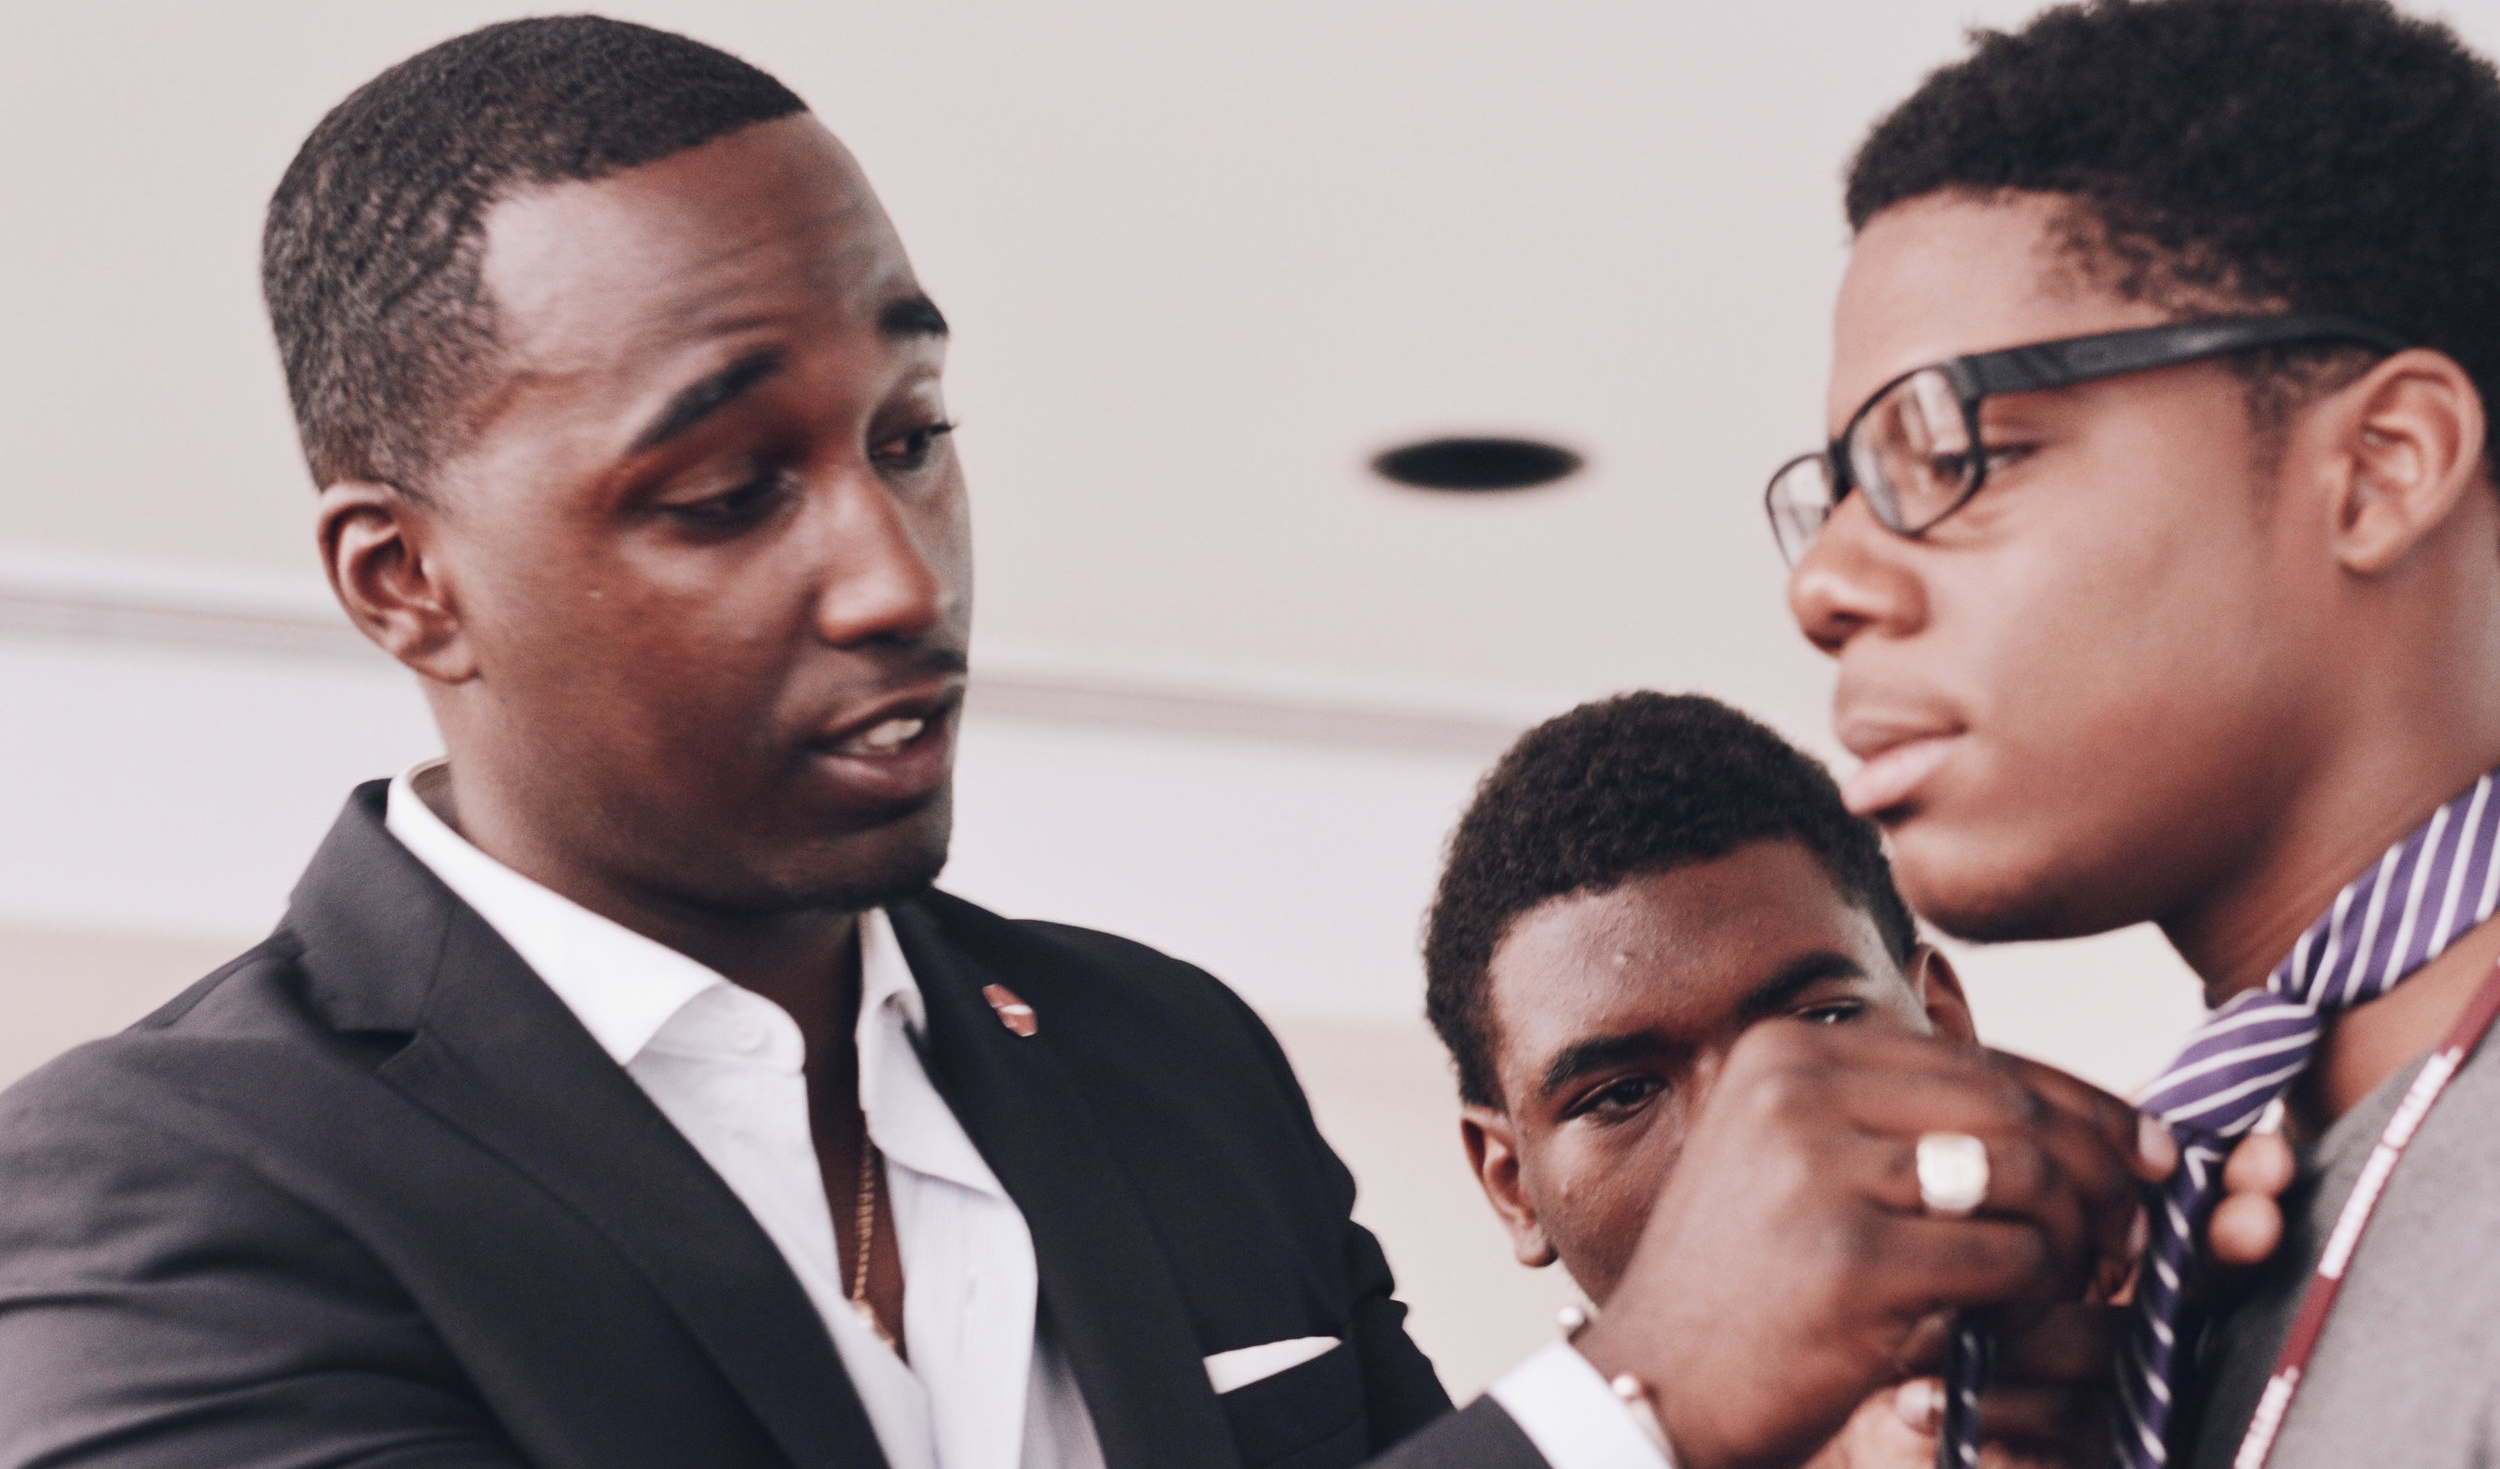 Dress For Success Workshops - TPG travels around the country speaking to students and adults of all ages about his 3 Step-Method on becoming The Perfect Gentleman.